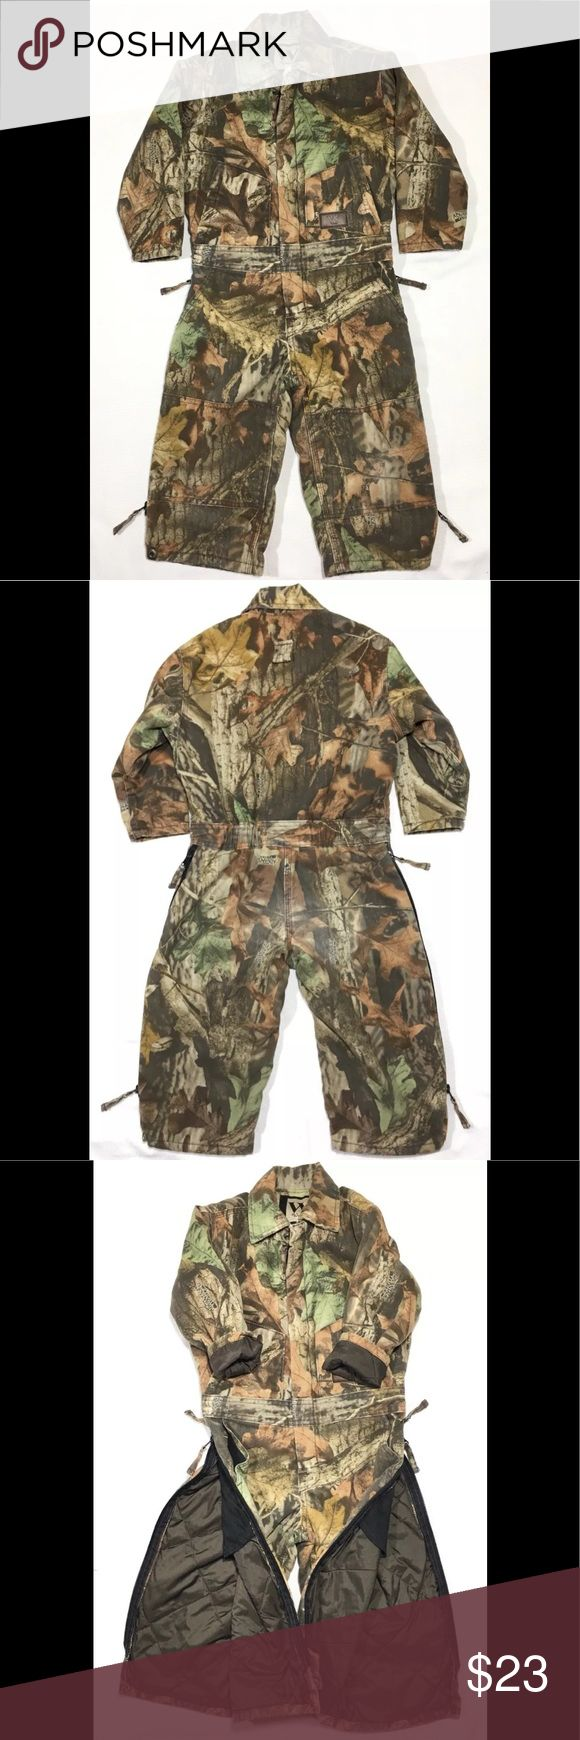 """Insulated Camouflage Camo Coveralls YOUTH BOY Sz 4 Youth Hunting Coveralls by Walls Camouflage print - Advantage Timber pattern Size 4 Regular - Youth Zips up front Cotton/polyester shell Polyester lining and insulation Quilted lining Zip outer legs all the way up to waist 2 Chest pockets 2 Hand pockets Great pre-owned condition - slight fading in the rear end. Measurements taken laying flat: Chest: 15"""" Waist: 12.5"""" Inseam: 12"""" Sleeve length from armpit: 10"""" Overall length: 33"""" Walls Jackets…"""